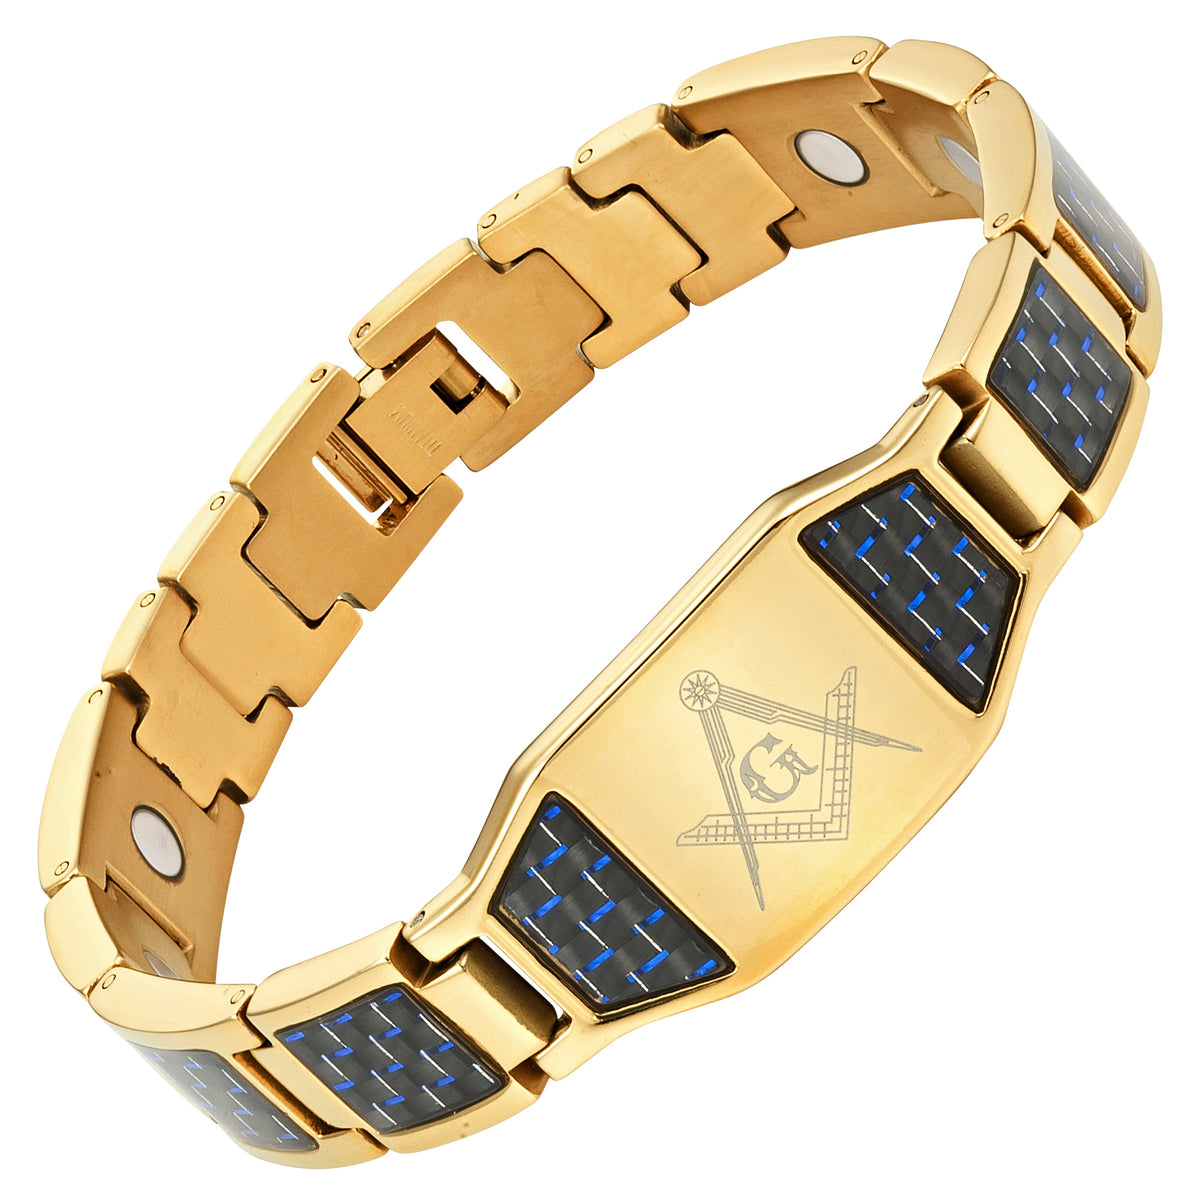 MasonicMan Gold Titanium Masonic Bracelet with Blue Carbon Fiber